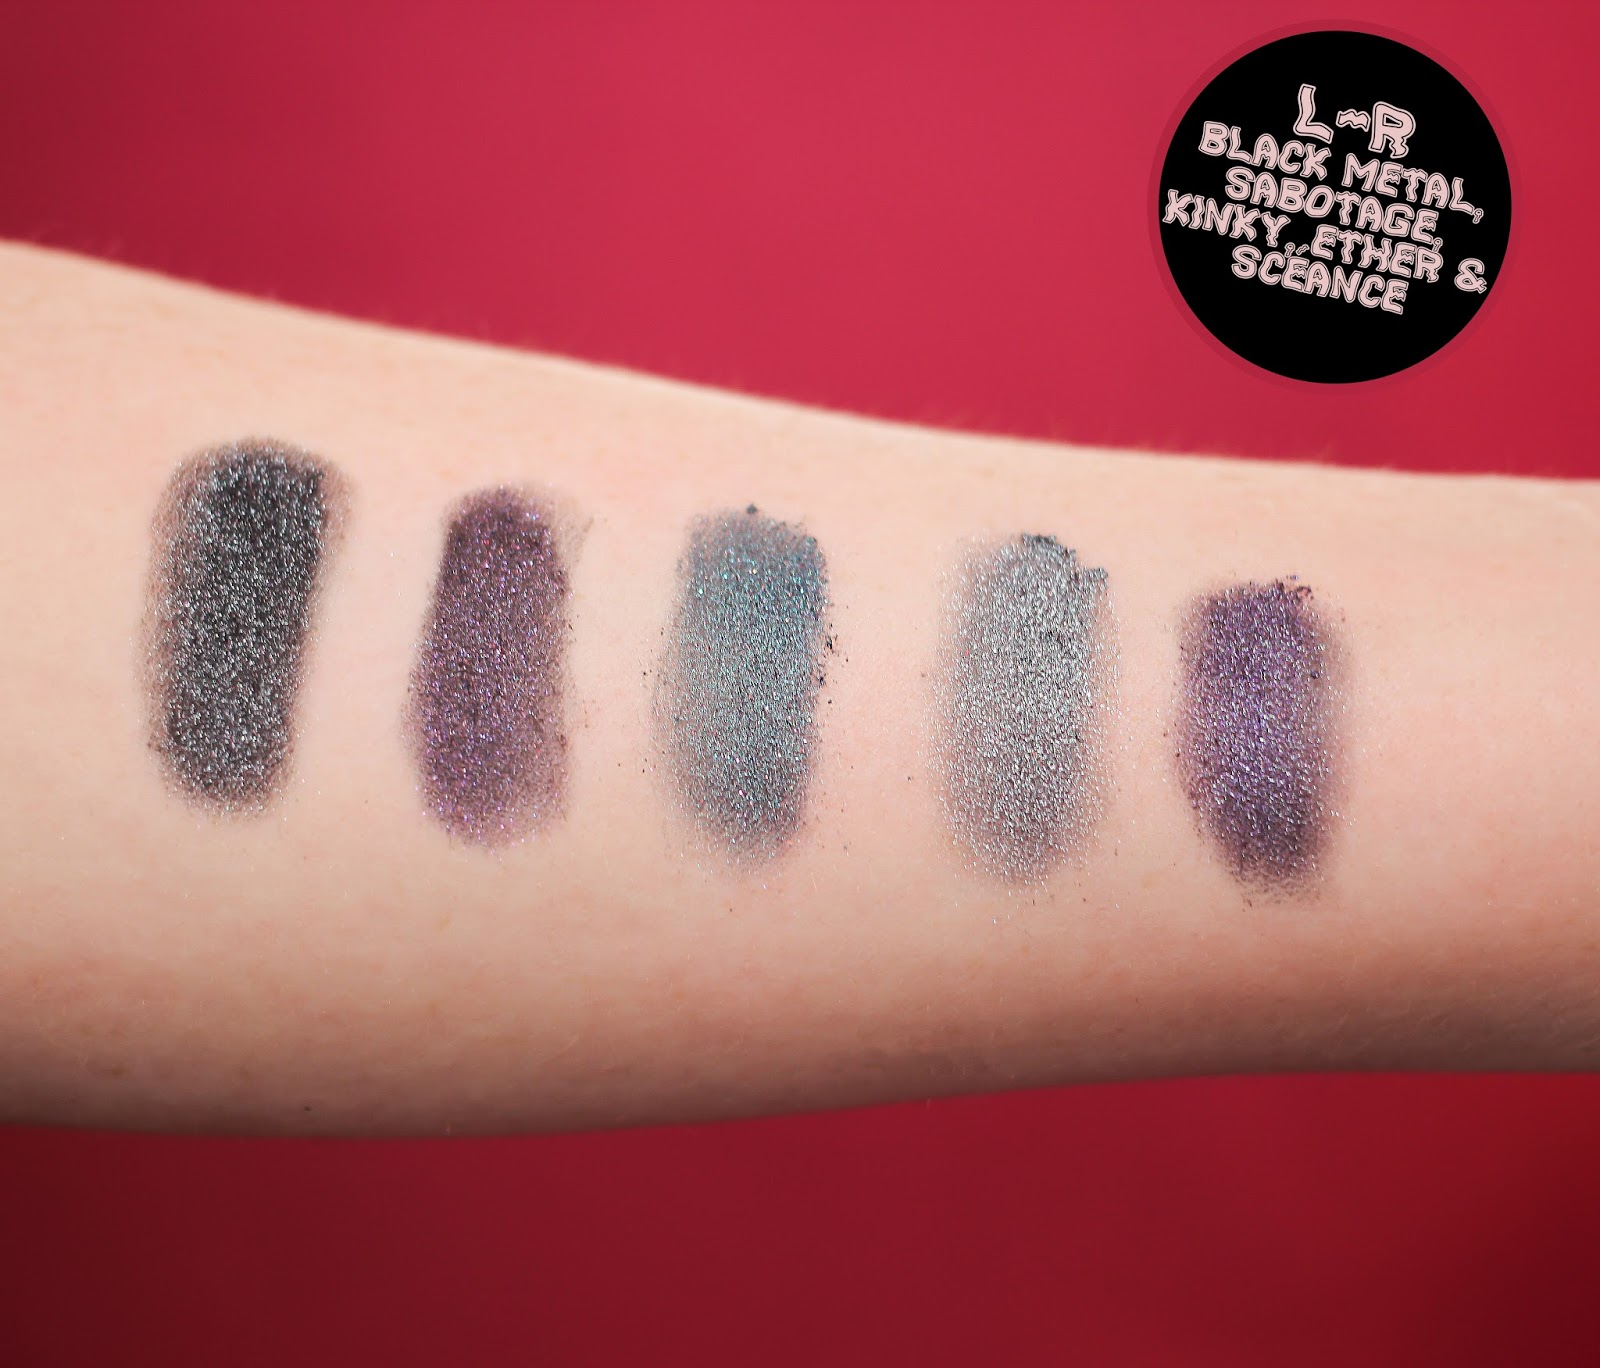 Concrete Minerals Blackest Black Eyeshadow Set Swatches - The Goodowl